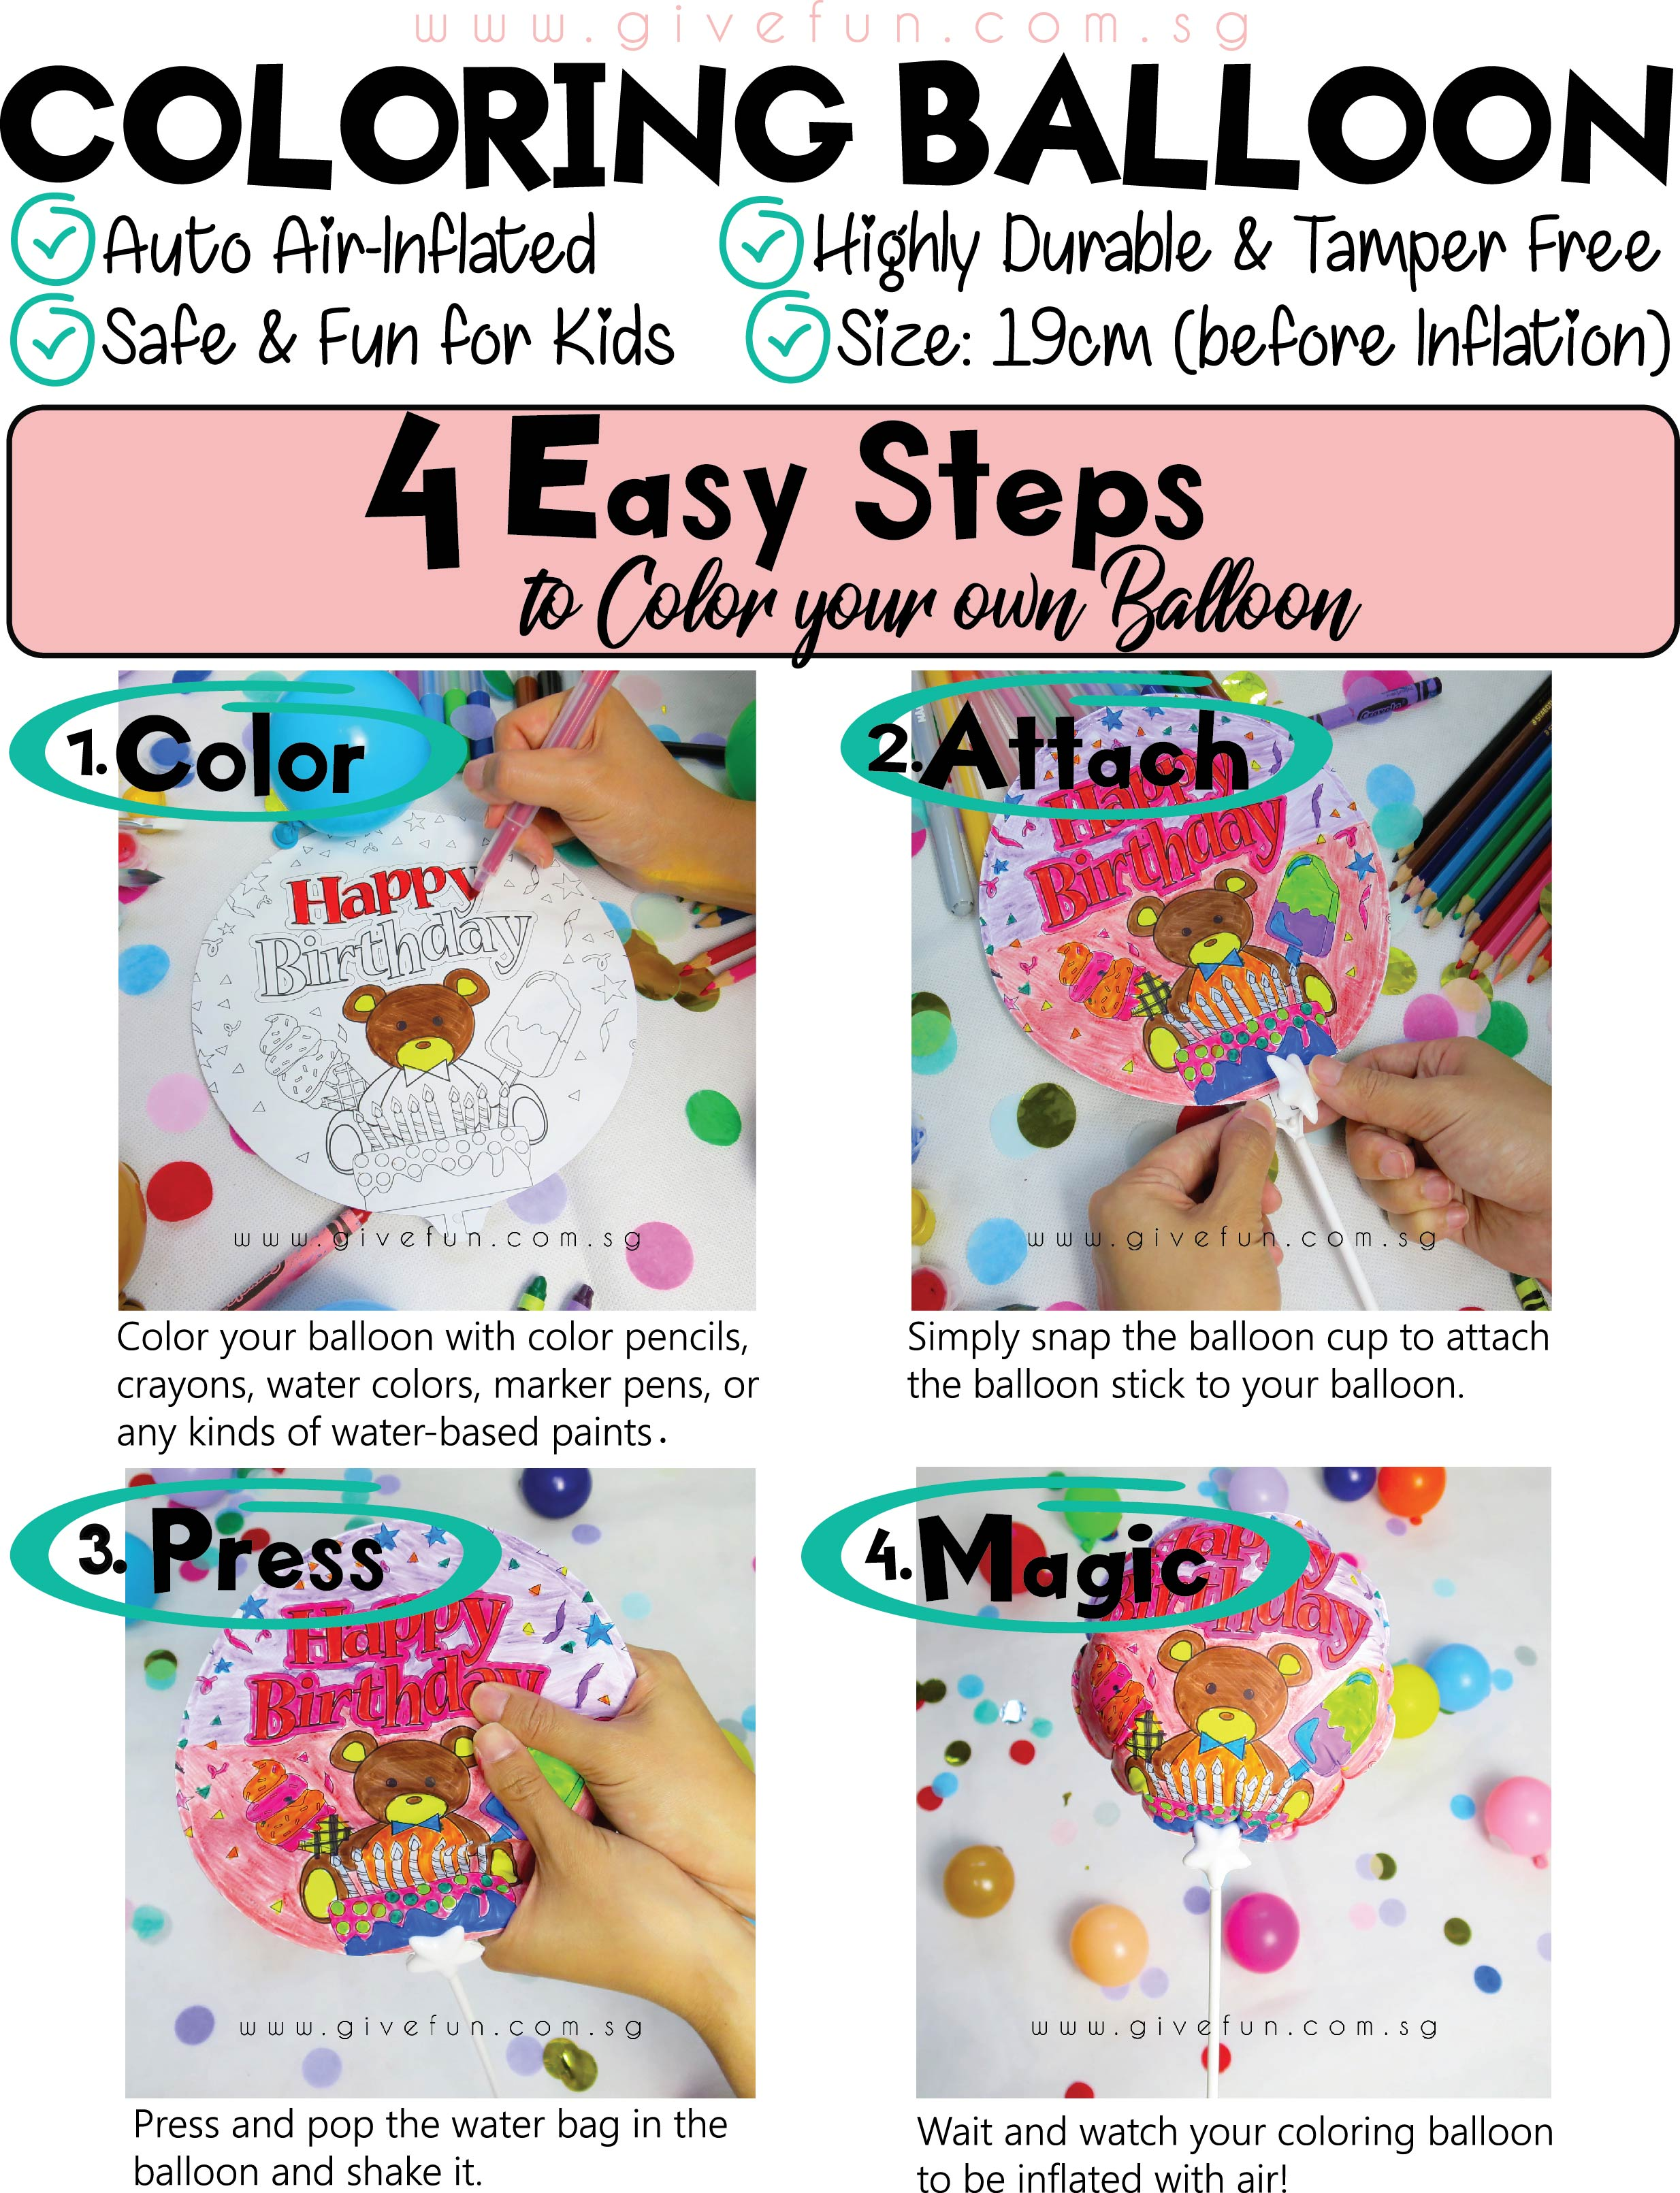 step-by-step-product-desc-1.jpg